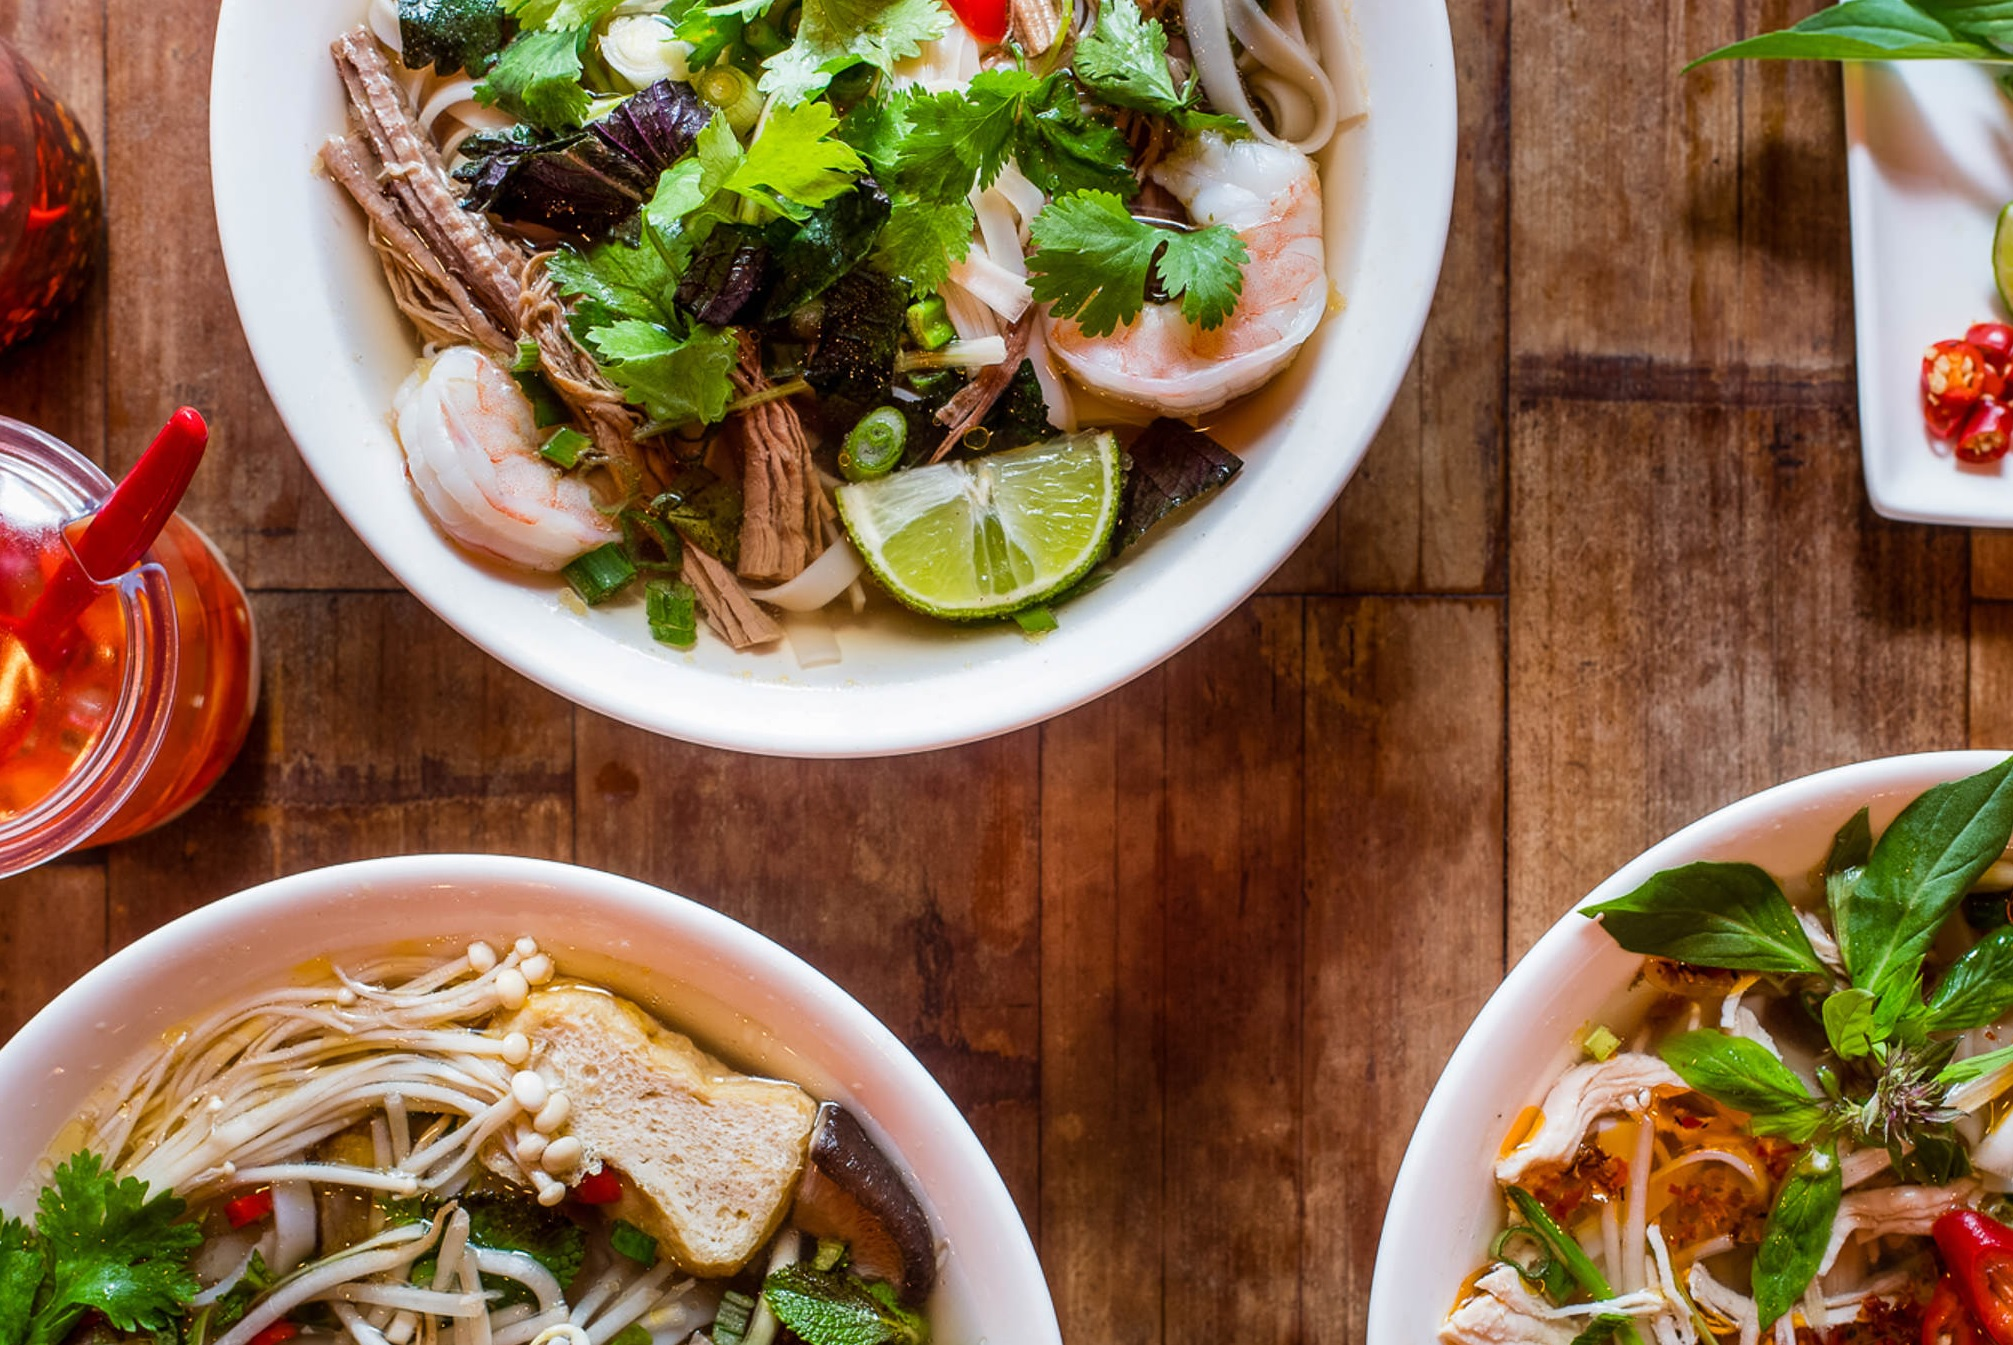 Foods to Try in Vietnam